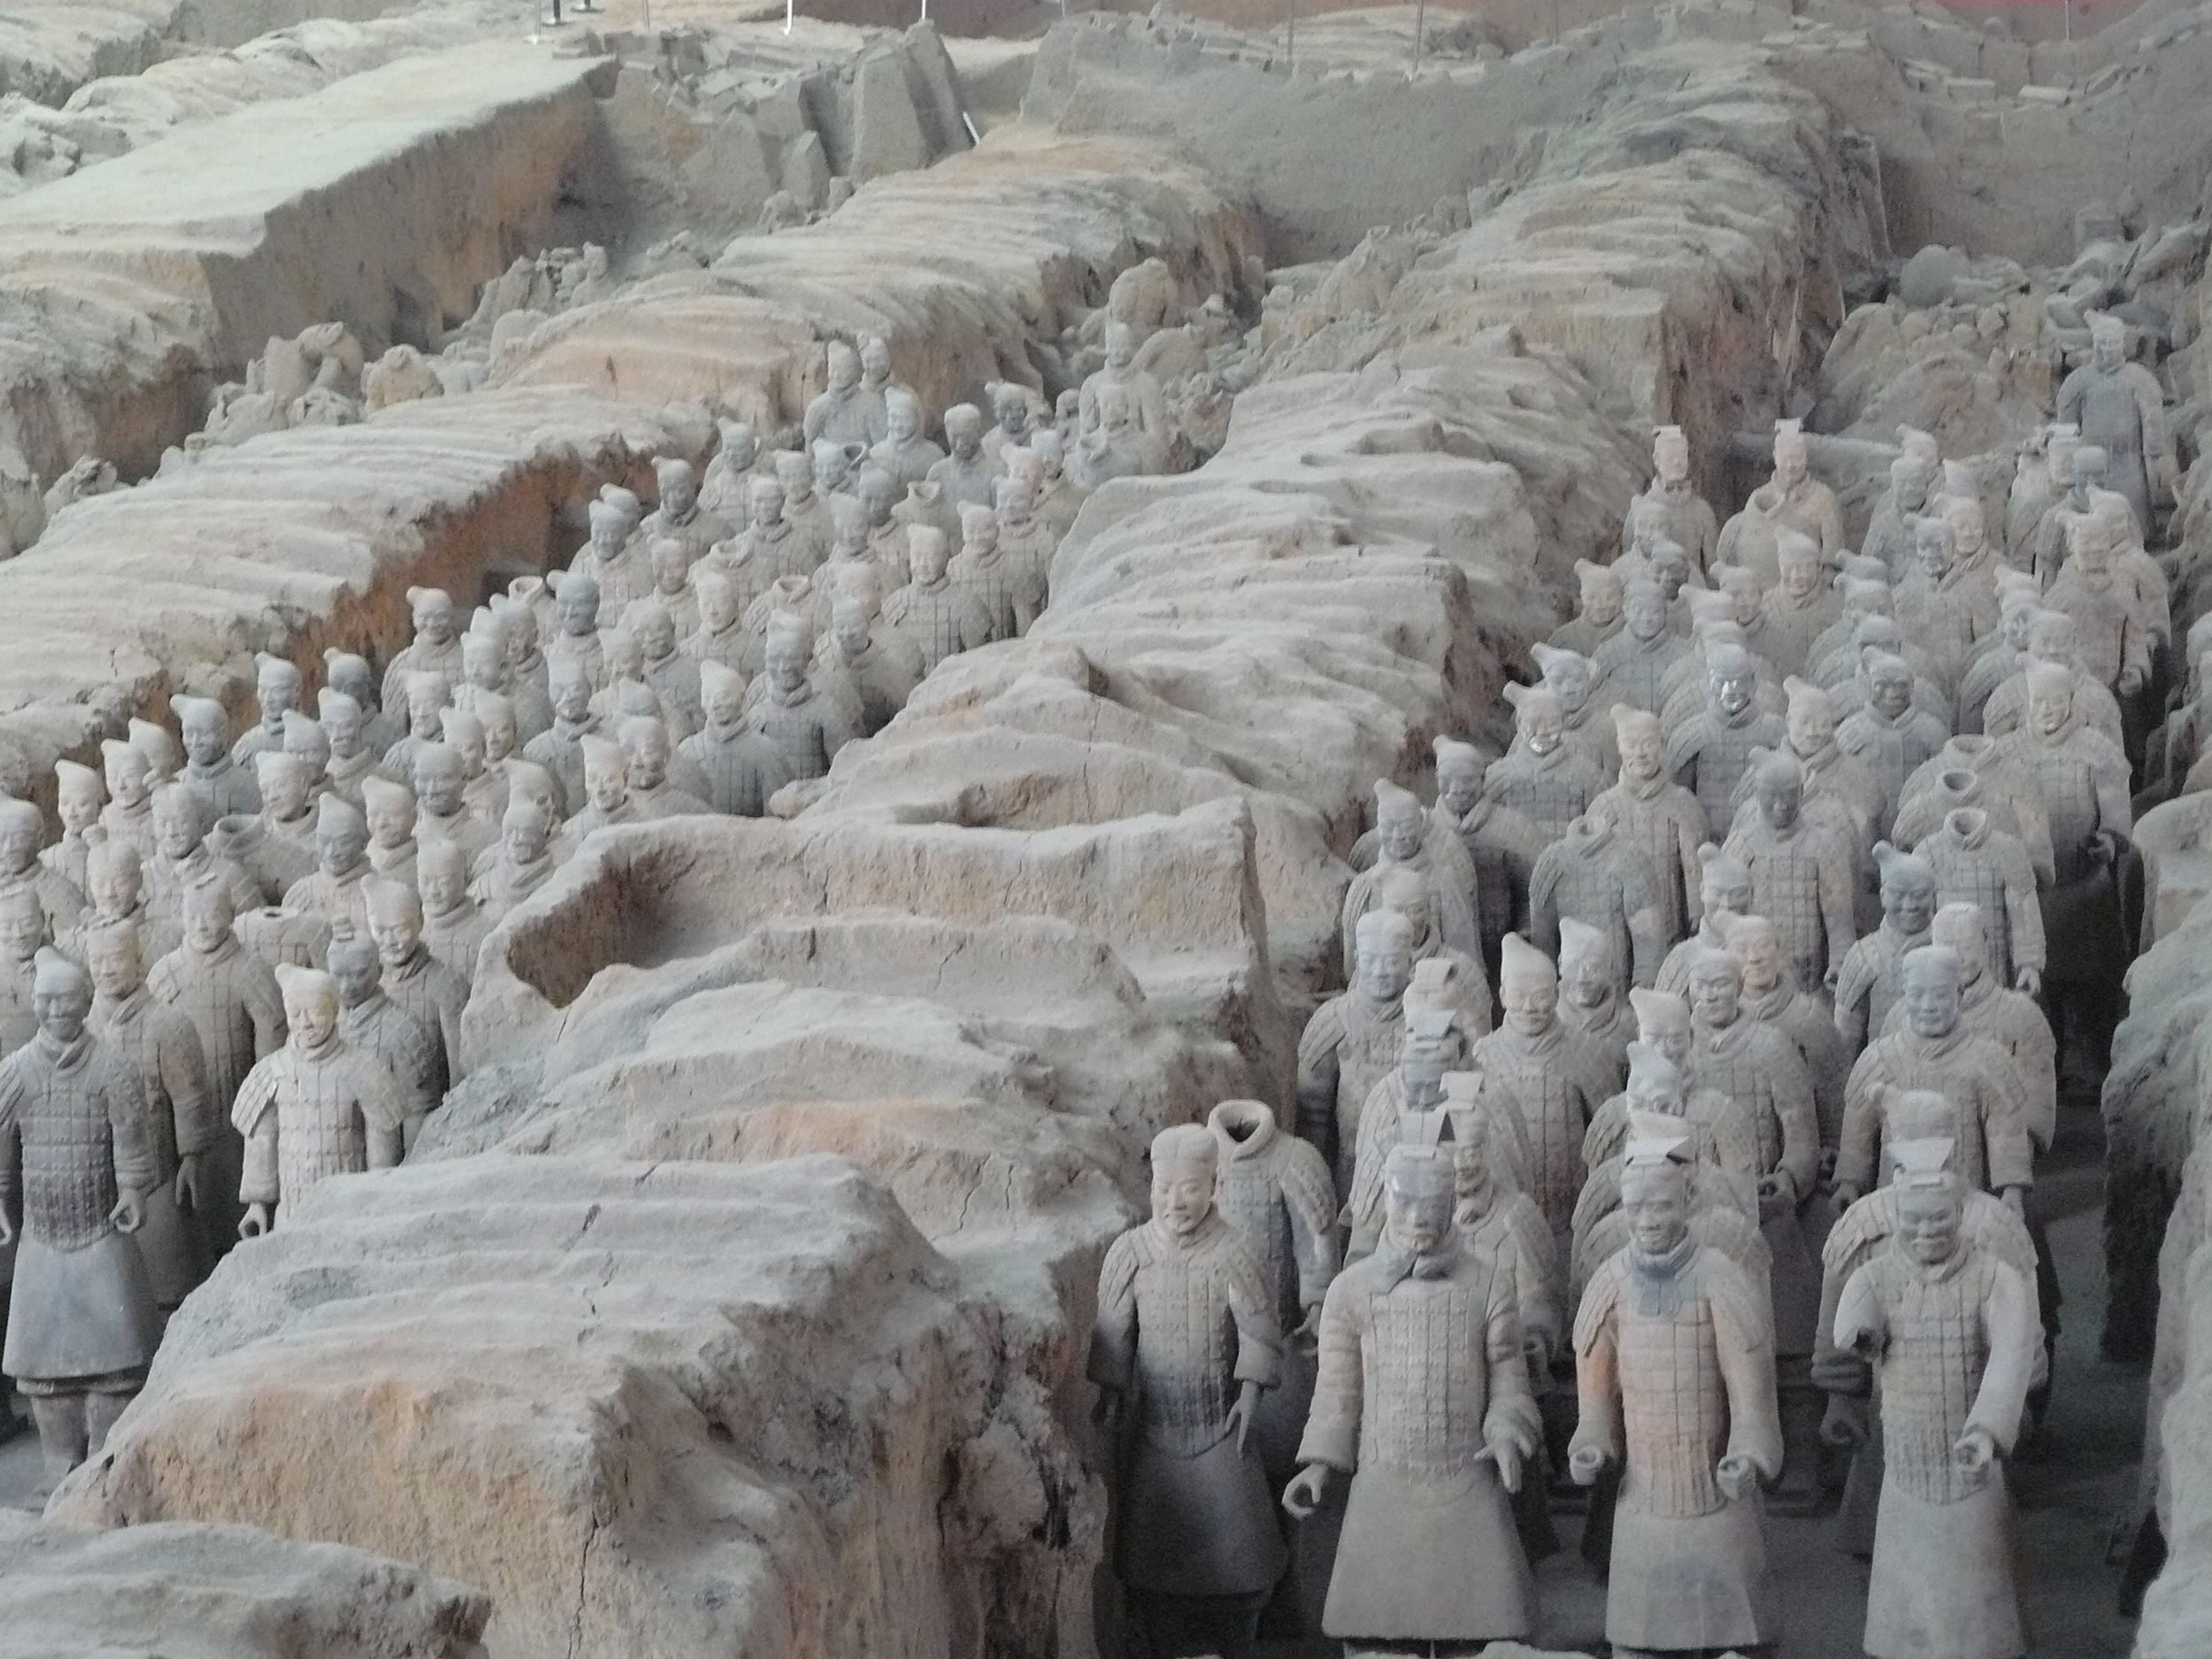 Ancient life-size terracotta warriors lined up to protect the emperor